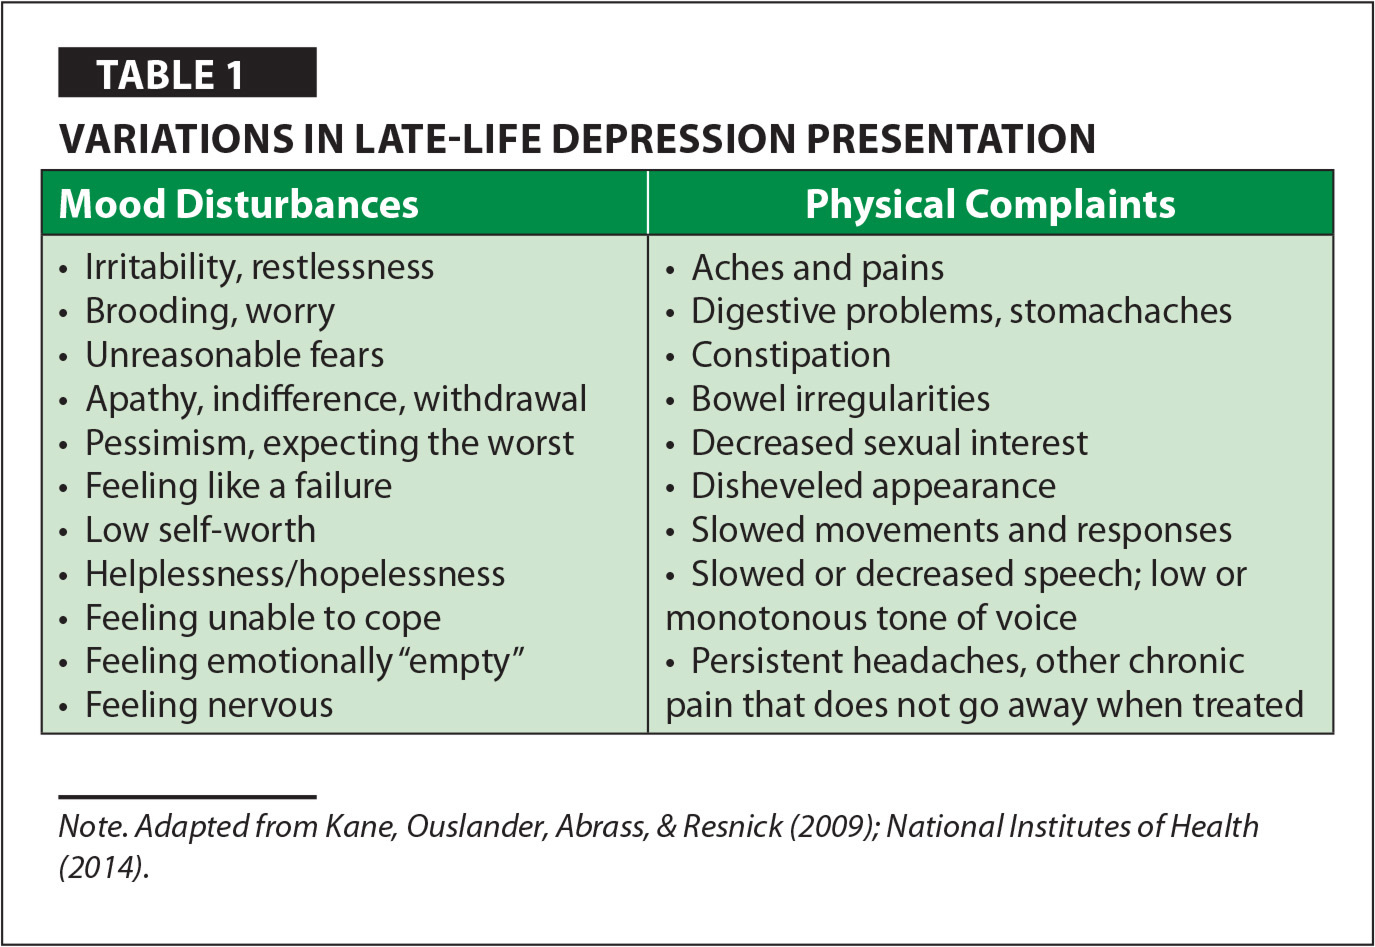 Variations in Late-Life Depression Presentation